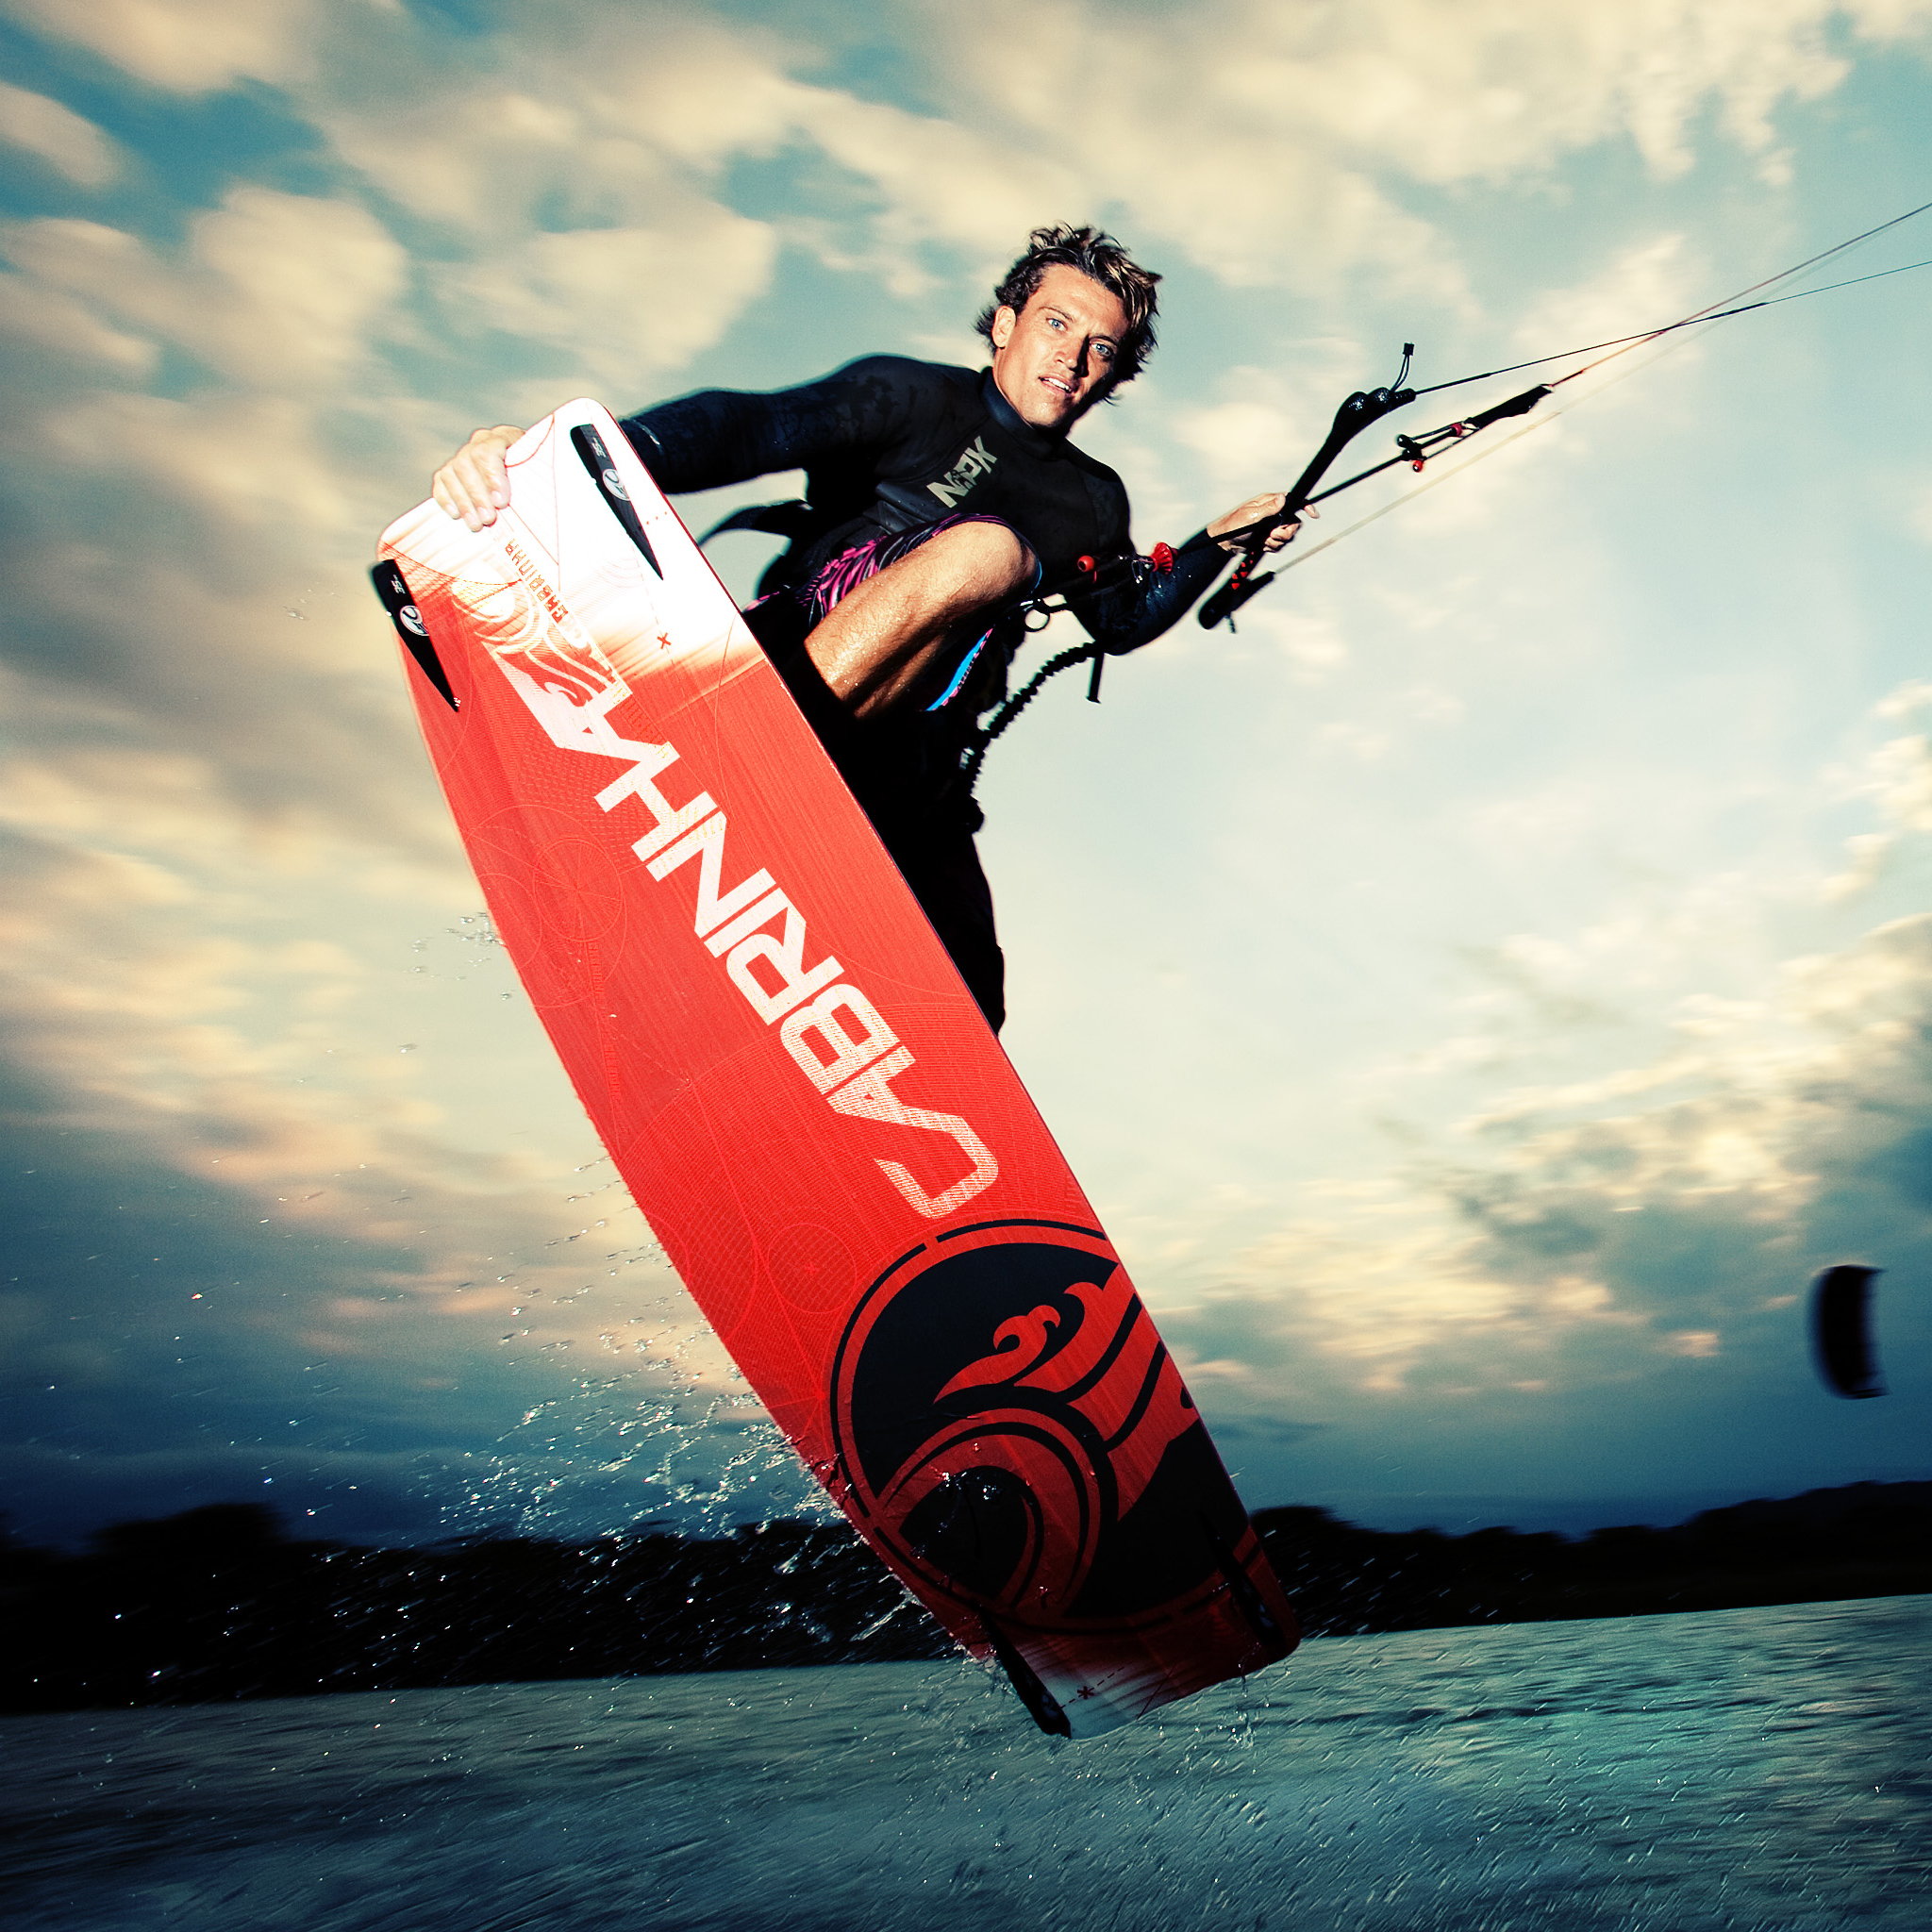 kitesurf wallpaper image - Damien LeRoy with a tailgrab at dusk on his Cabrinha kites gear - in resolution: iPad 2 & 3 2048 X 2048